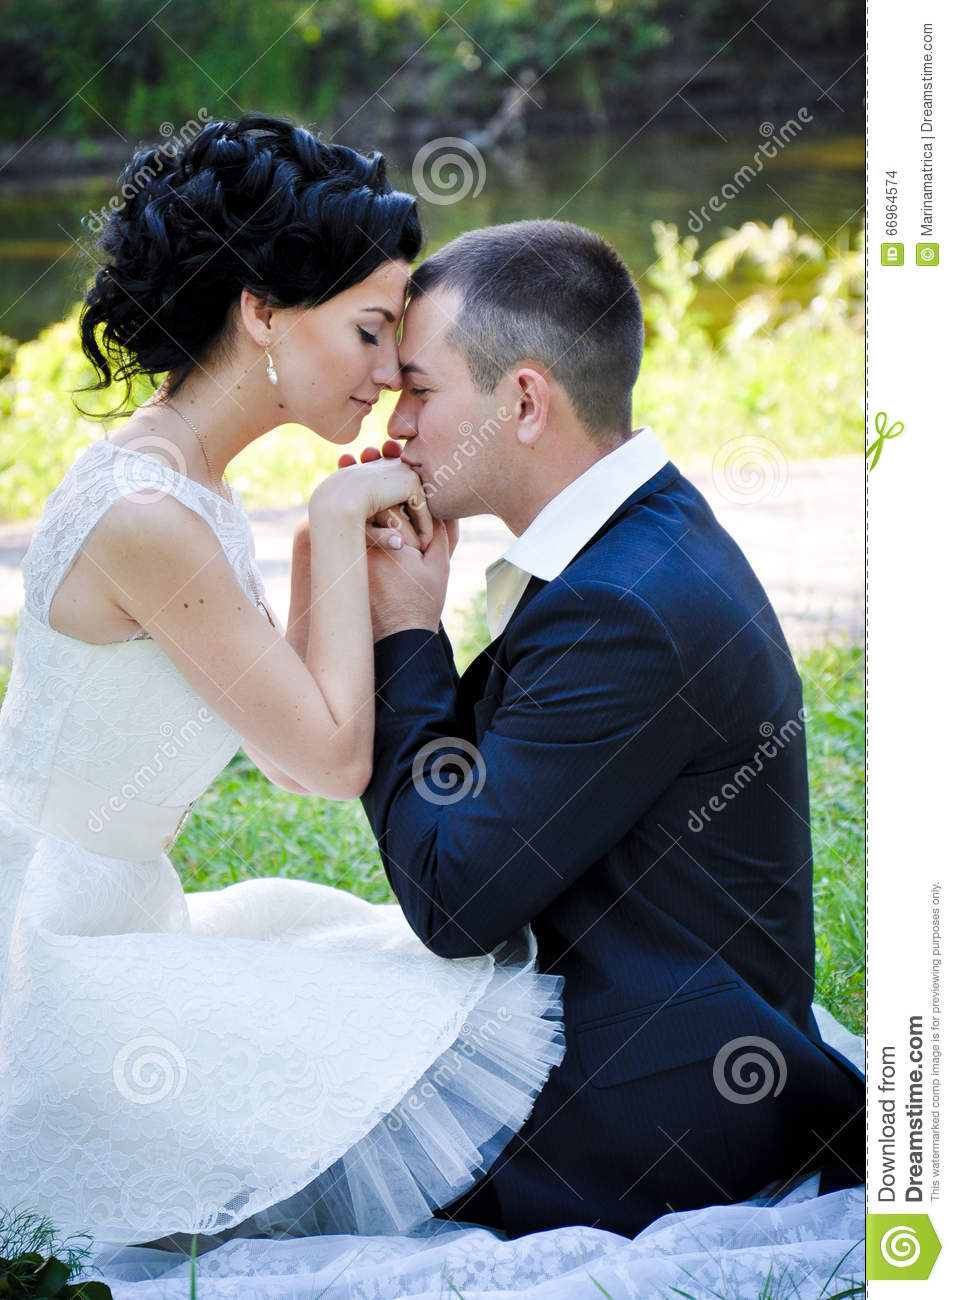 Outdoor sensual portrait of young beautiful couple in love posing in summer park boyfriend kissing his girlfriend